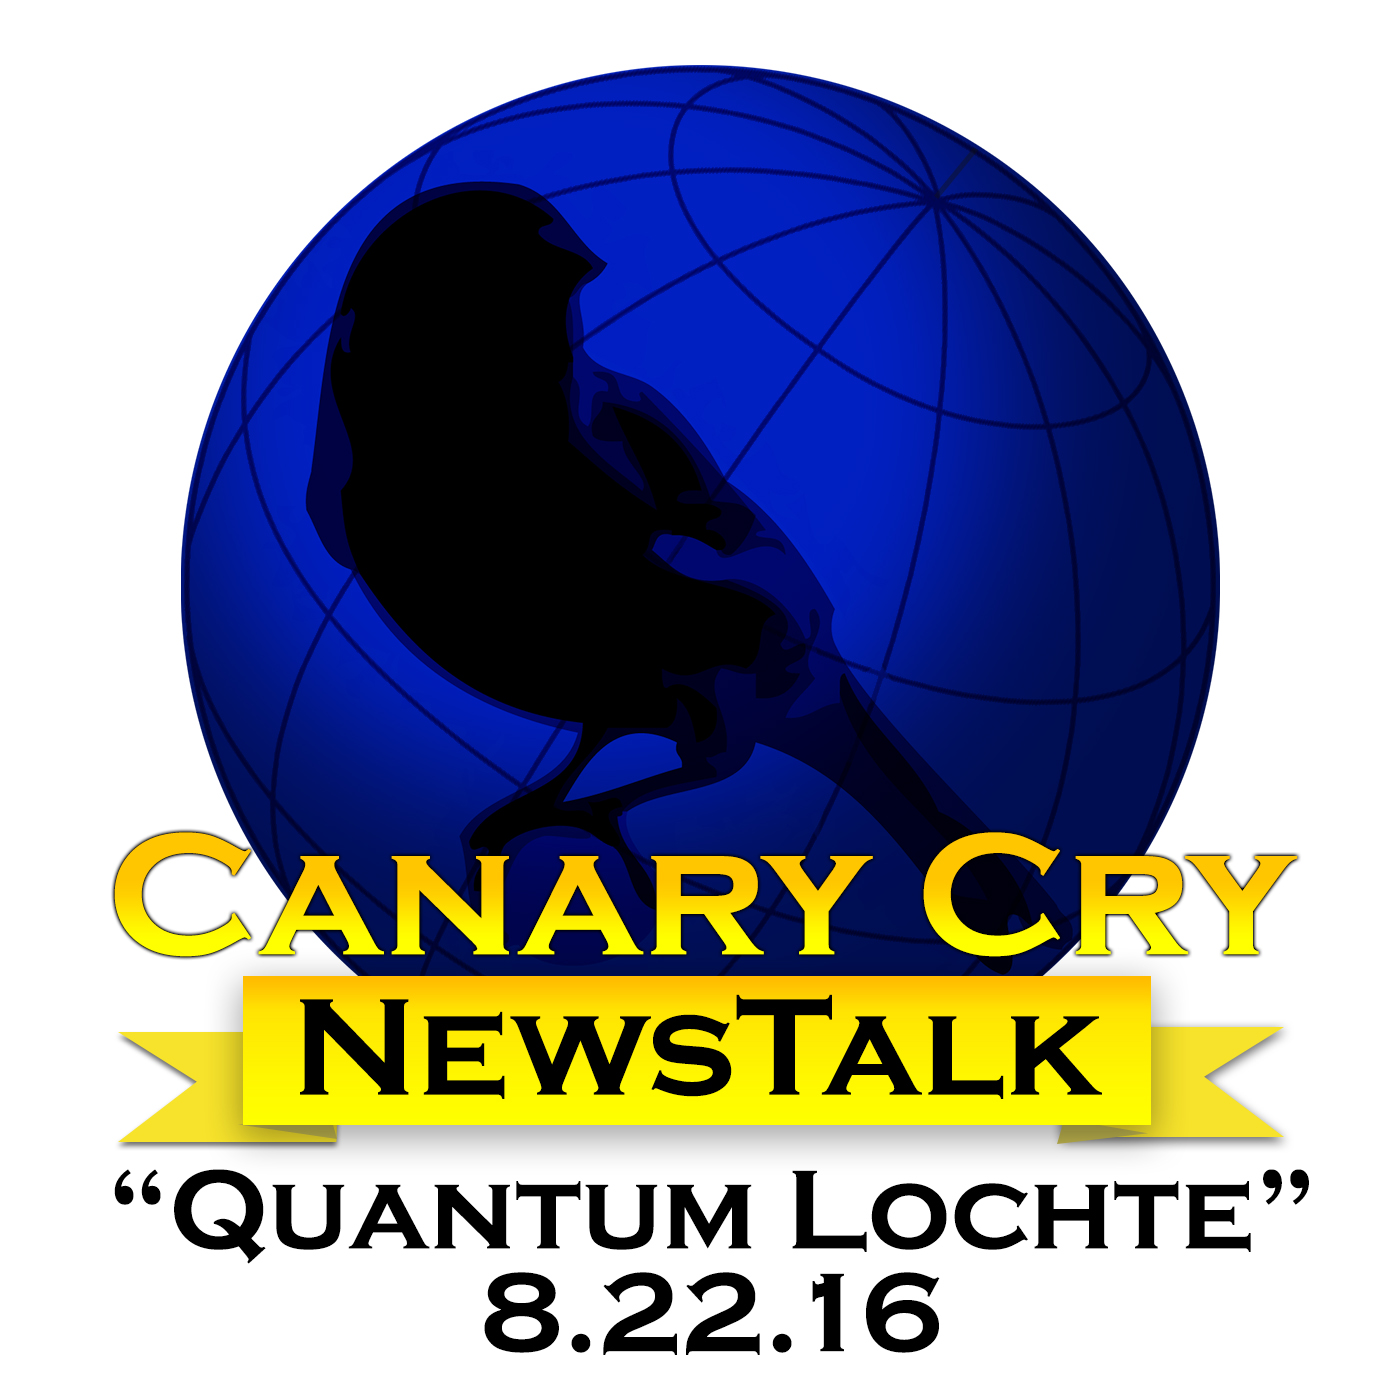 """CCR *Special* : Canary Cry News Talk """"Quantum Lochte"""" – 8.22.2016"""